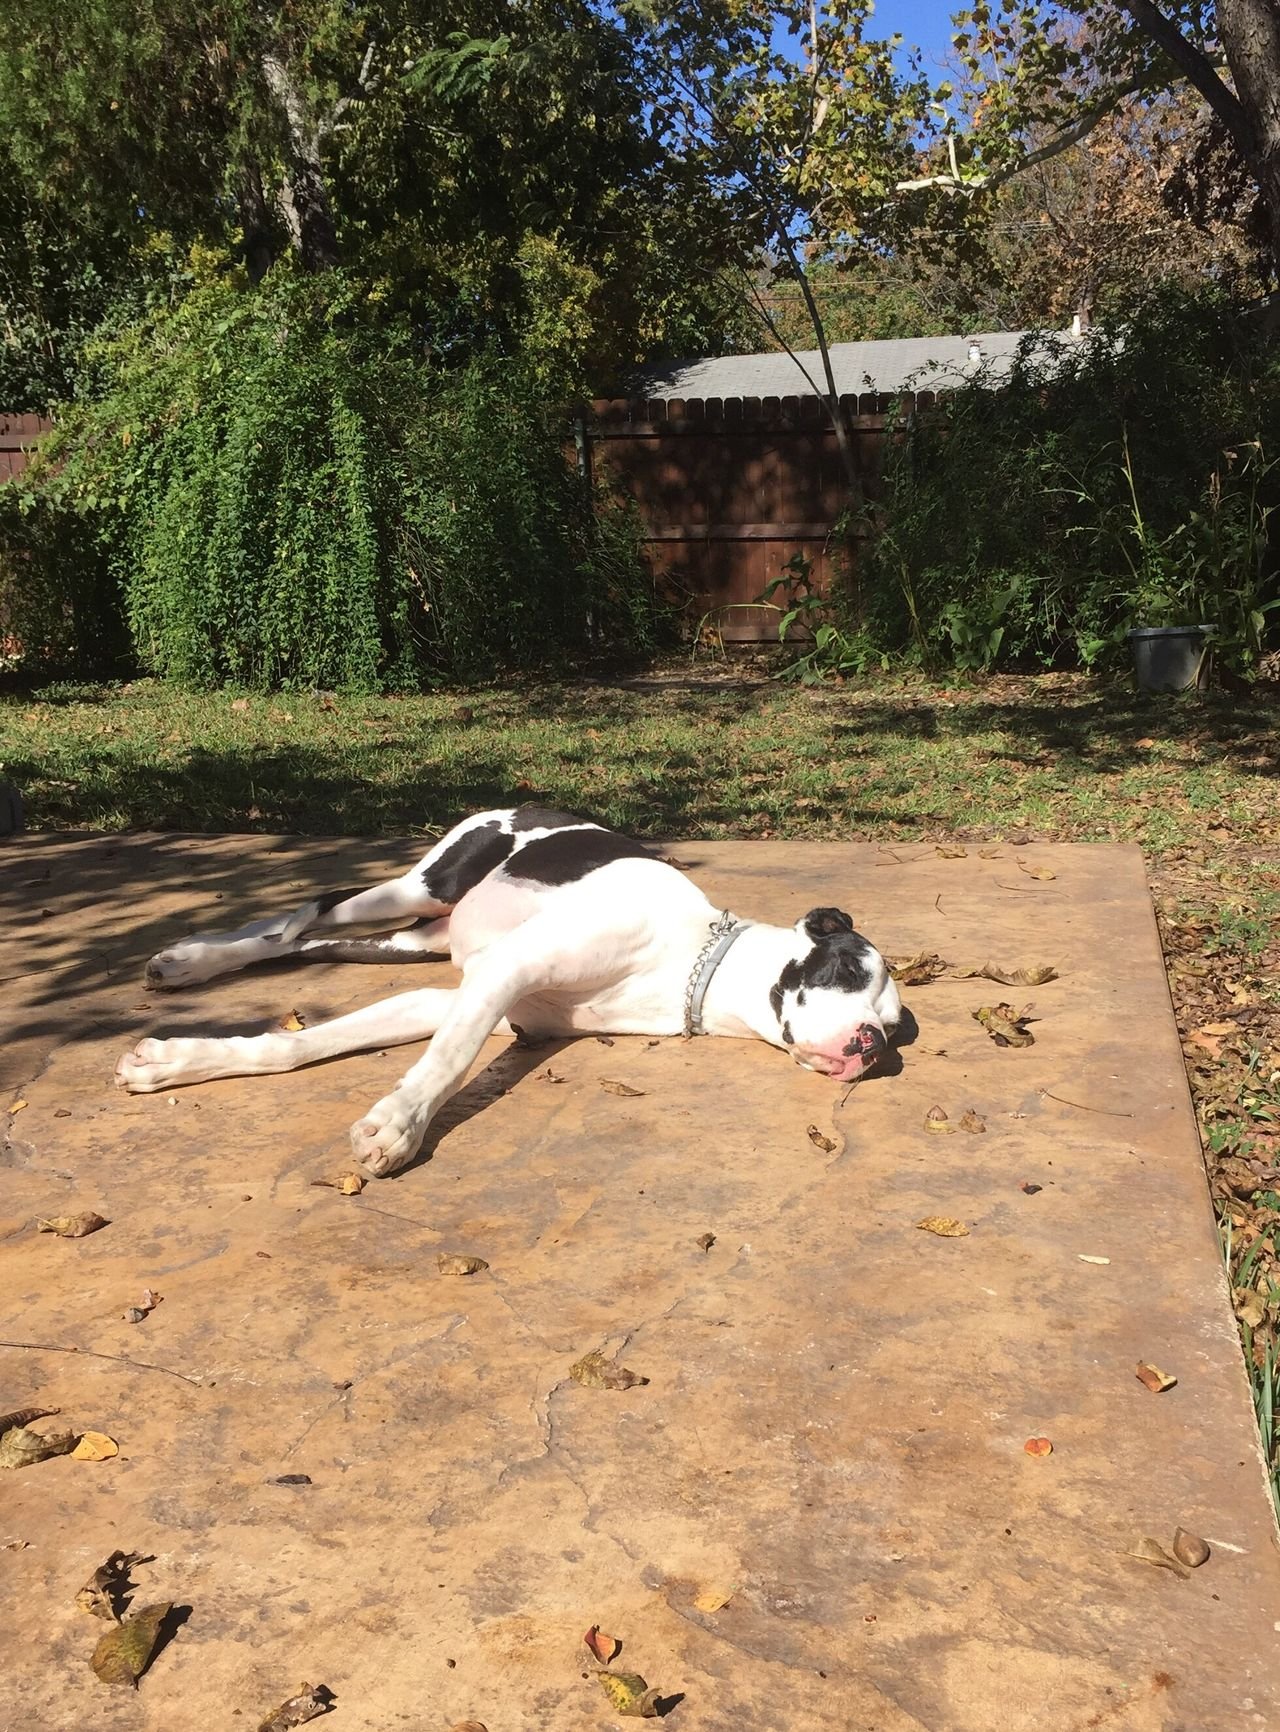 Enjoy The New Normal Dog Great Dane Great Danes Harlequin Harlequin Great Dane Sunbathing Sunbath Domestic Animals Pets Animal Themes Outdoors Nature The Purist (no Edit, No Filter)